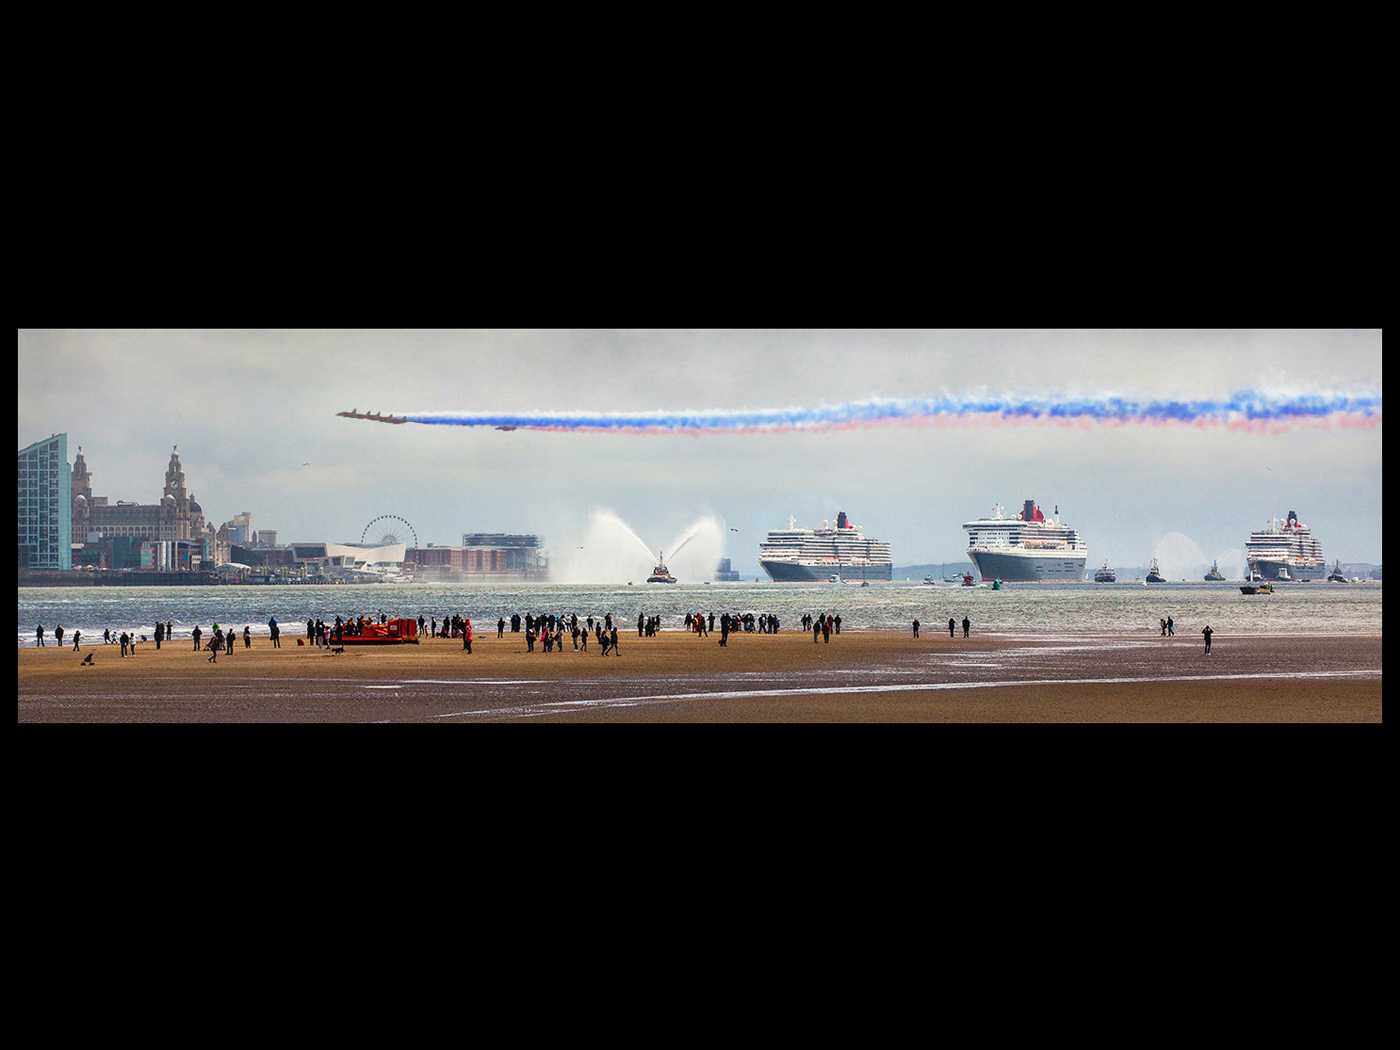 Liverpool receives Cunards Salute